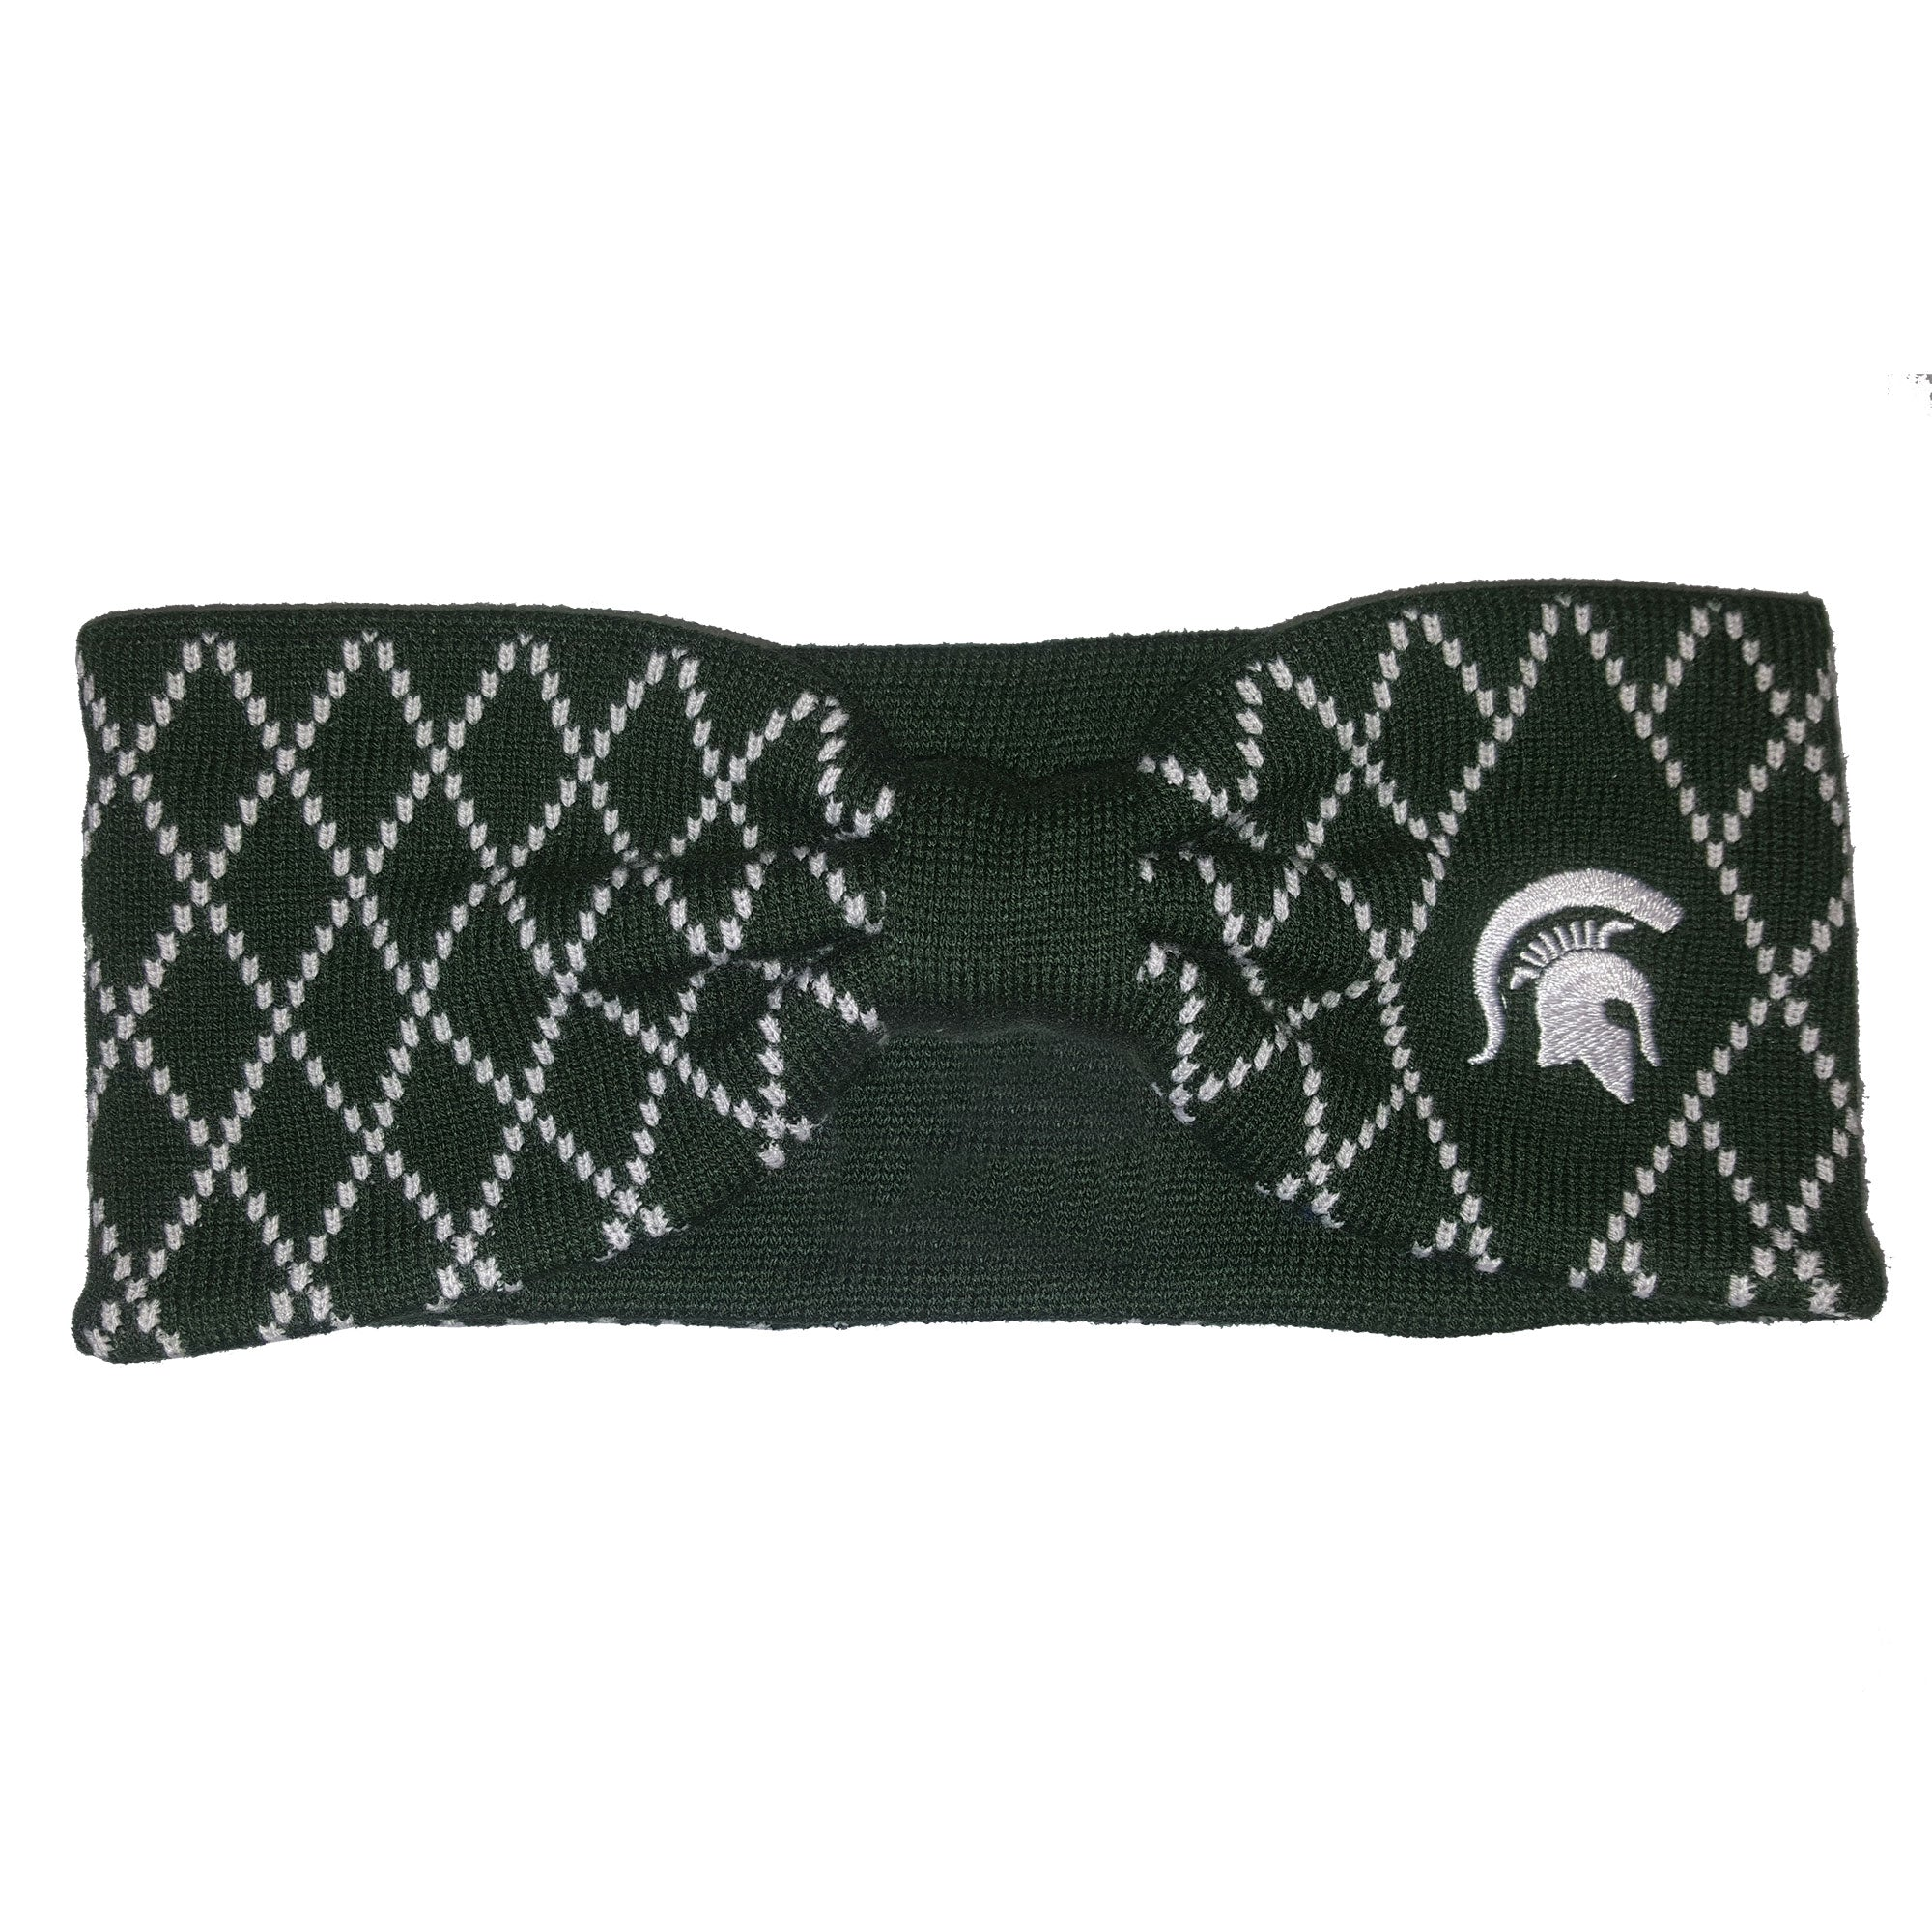 MICHIGAN STATE SPARTANS HEADBAND